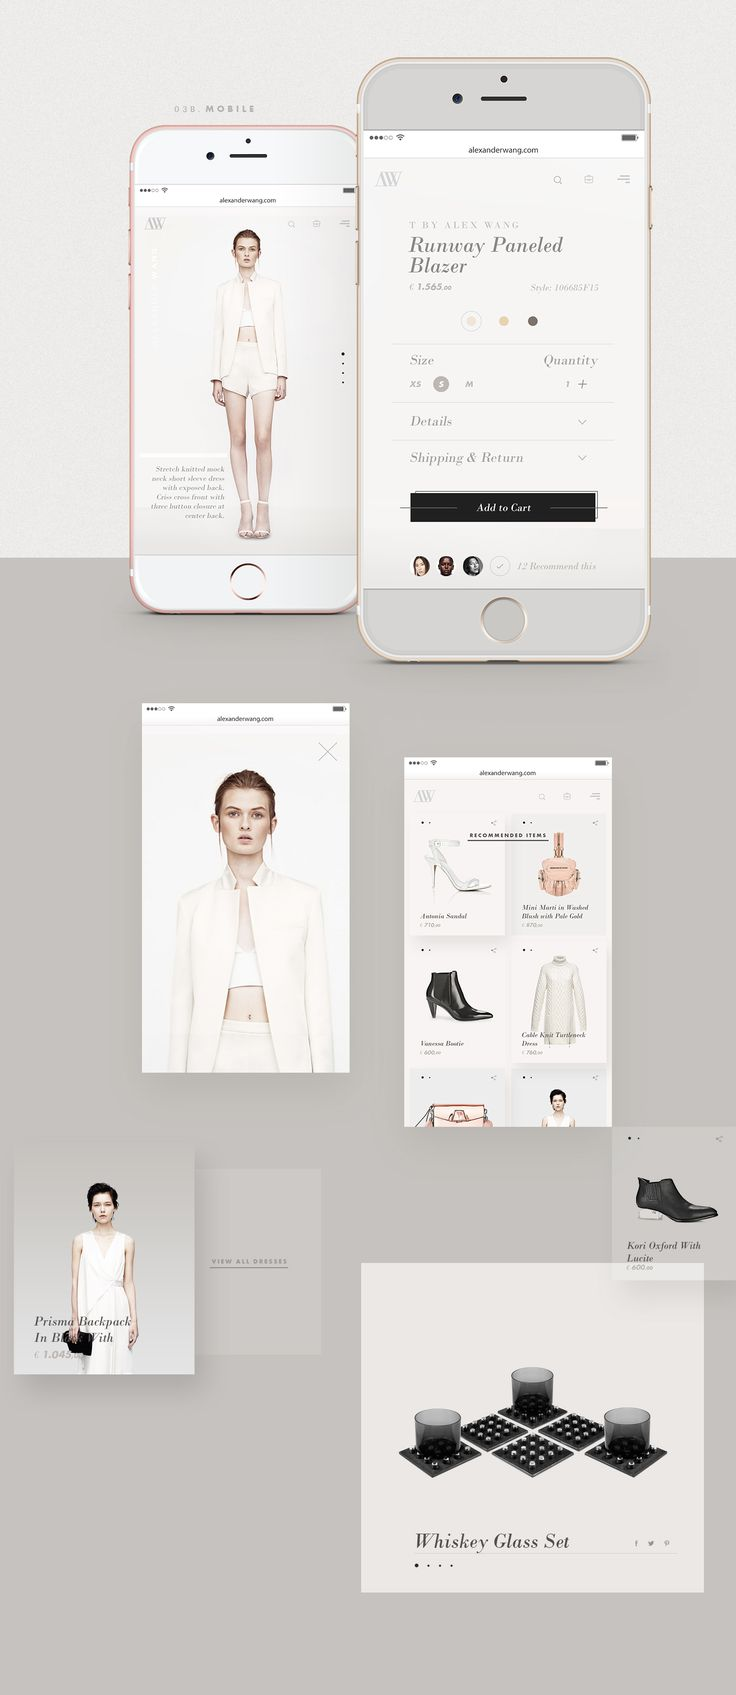 Redesign of the fashion designer Alex Wang´s website. This is a personal project.